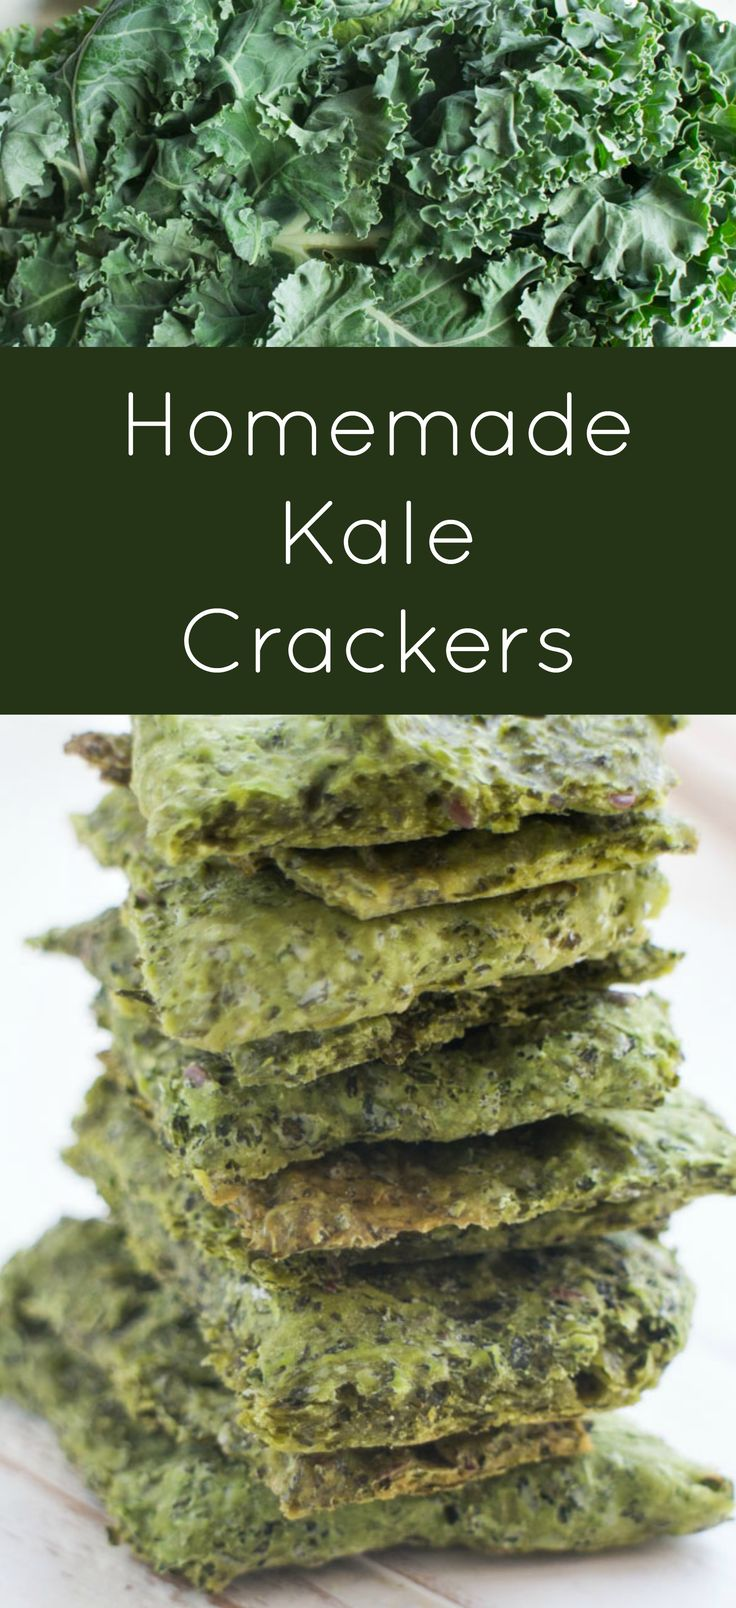 Simple Homemade Kale Crackers. These homemade crackers are made by combining a bunch of kale and flour. They are sprinkled with…